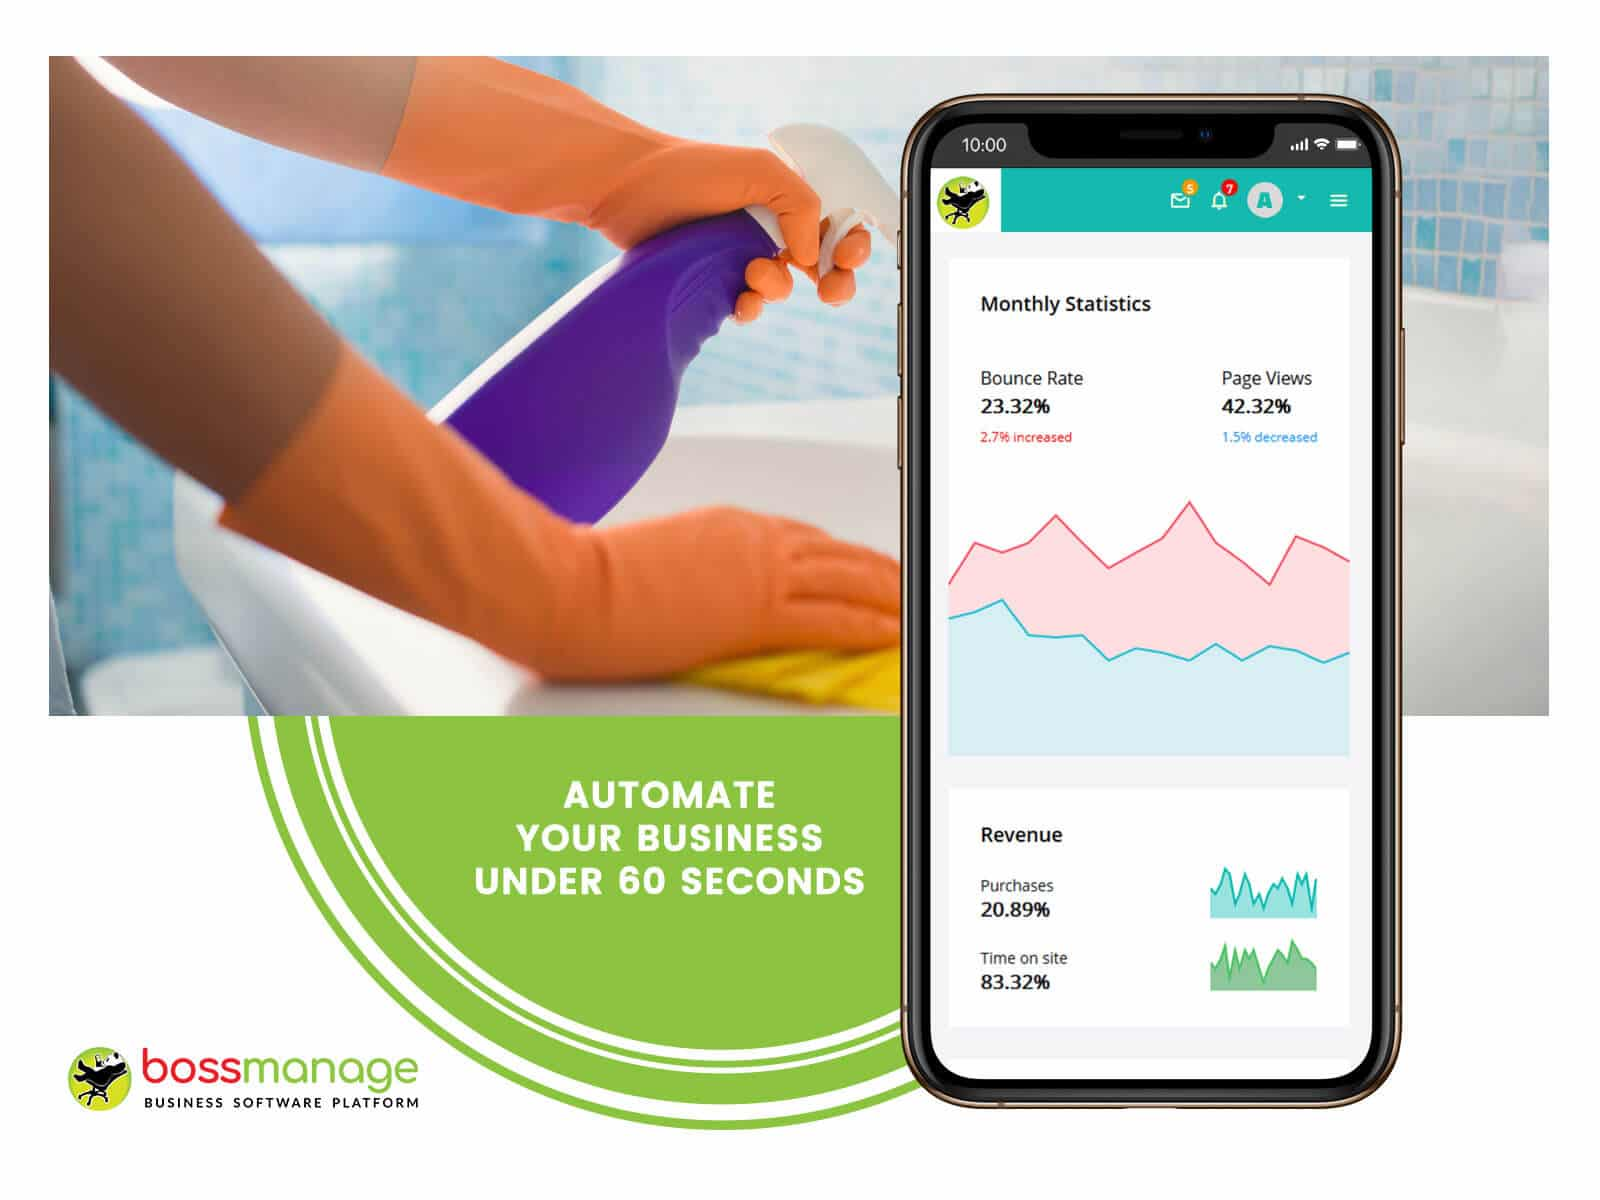 best service scheduling software, Residential cleaning management system, BossManage